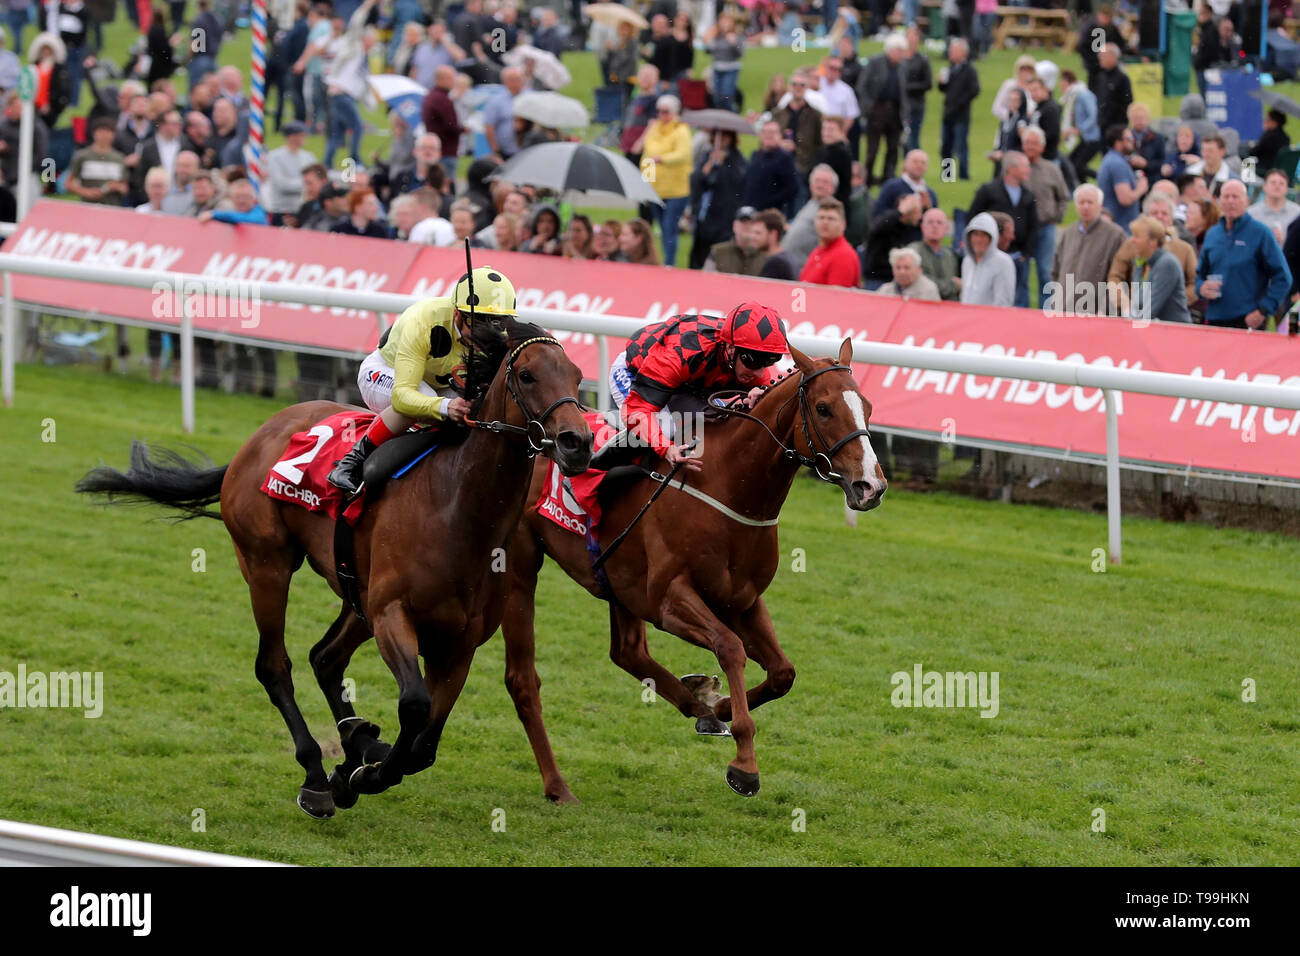 Lucius Tiberius ridden by James Doyle(L) wins the Matchbook Betting Podcast Hambleton Handicap during day three of the Dante Festival at York Racecourse. - Stock Image